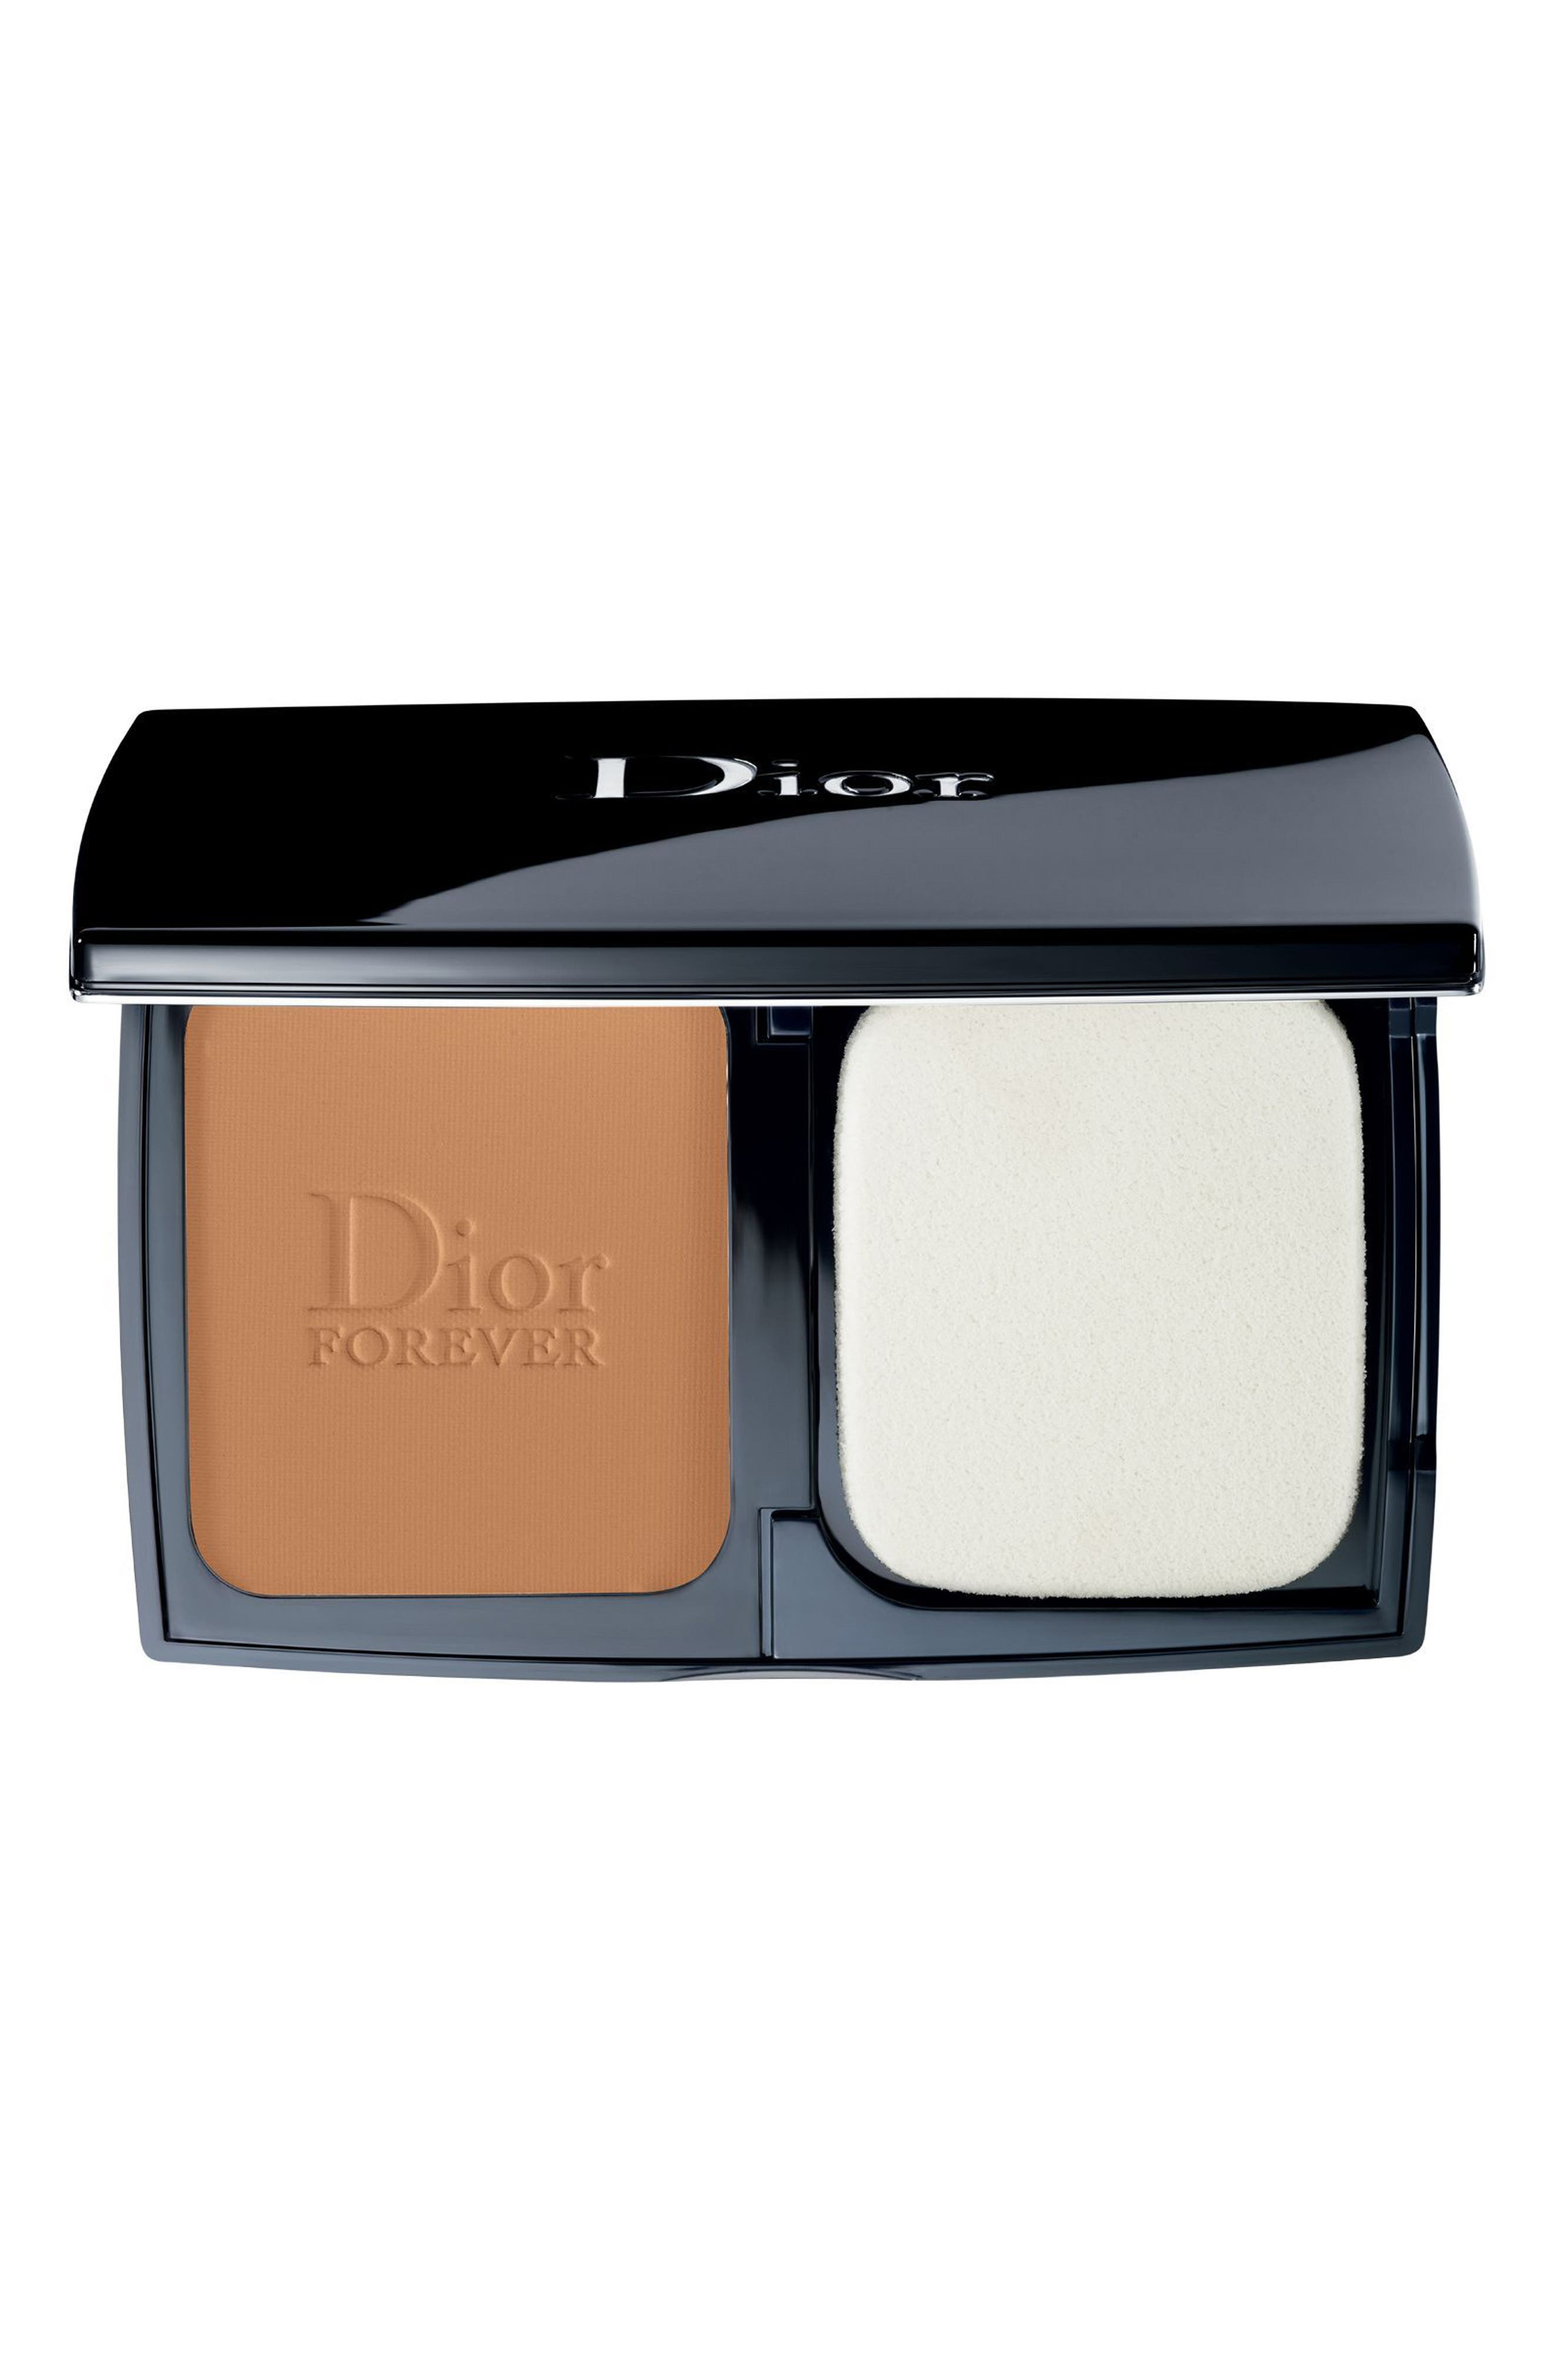 Diorskin Forever Extreme Control, Main, color, 060 LIGHT MOCHA